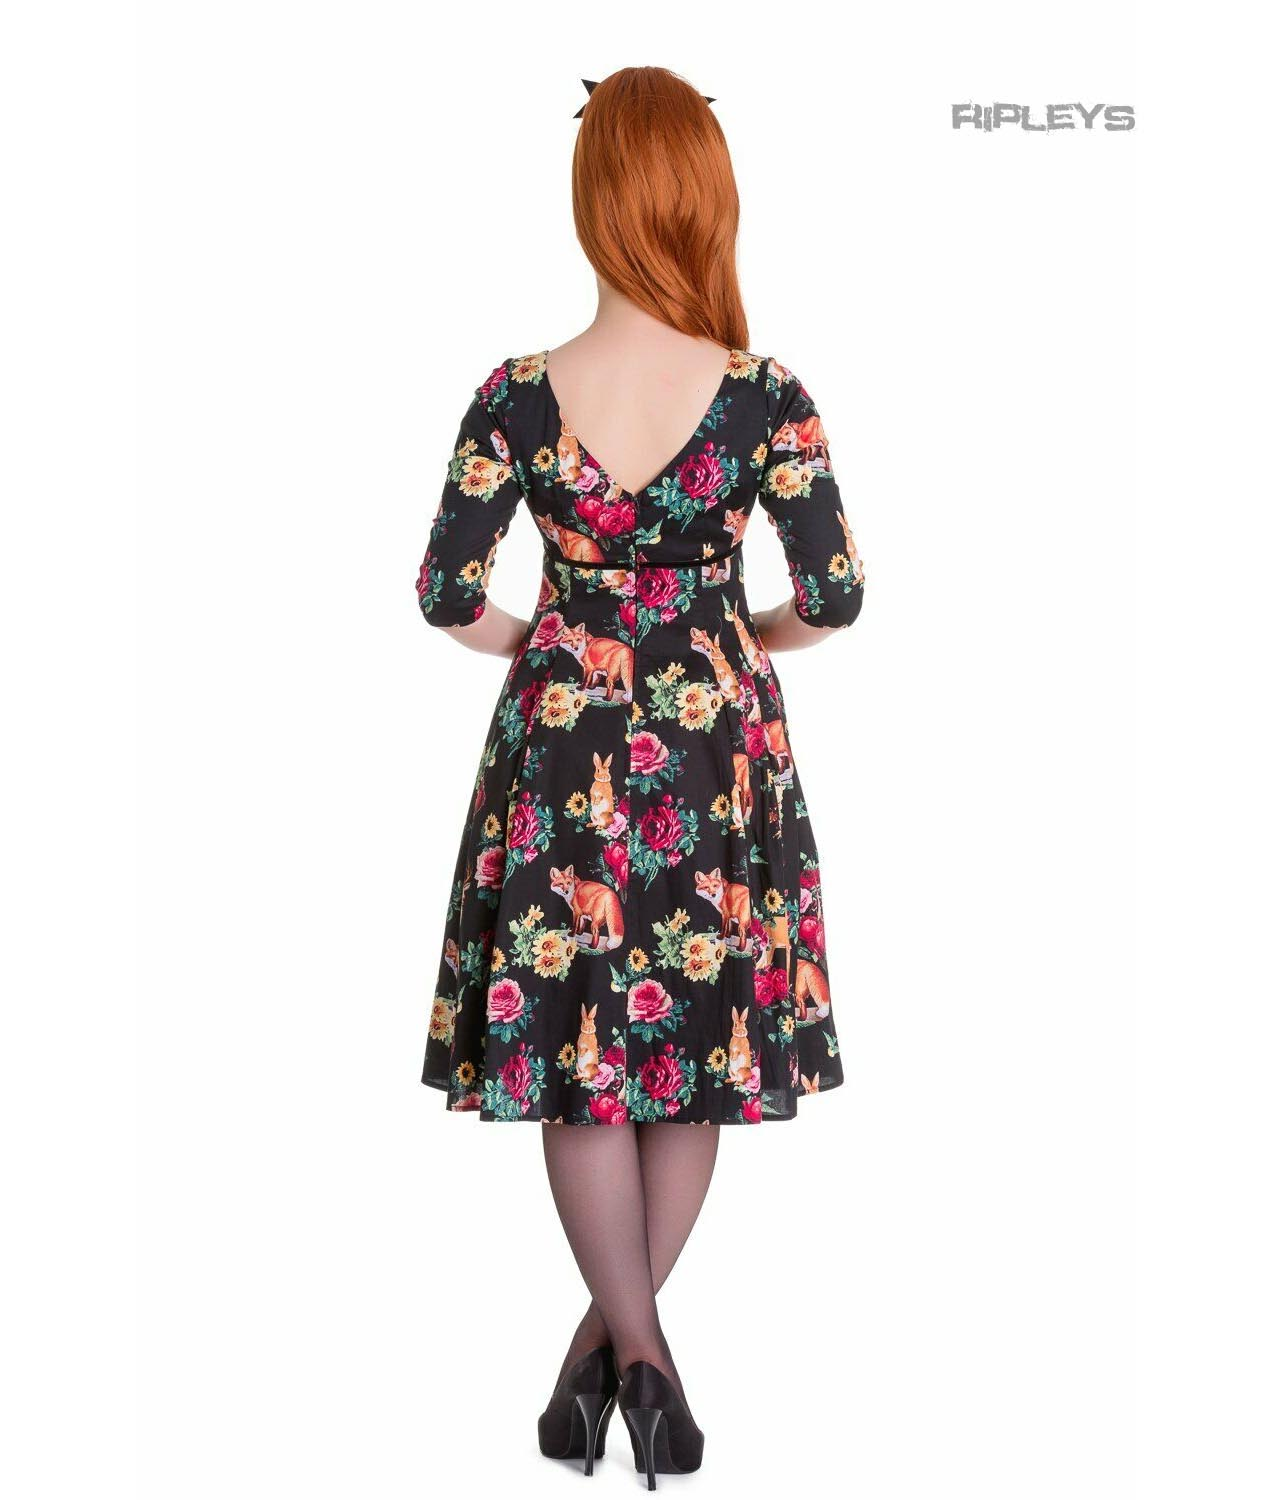 Hell-Bunny-40s-50s-Pin-Up-Vintage-Dress-HERMELINE-Woodland-Fox-All-Sizes thumbnail 8